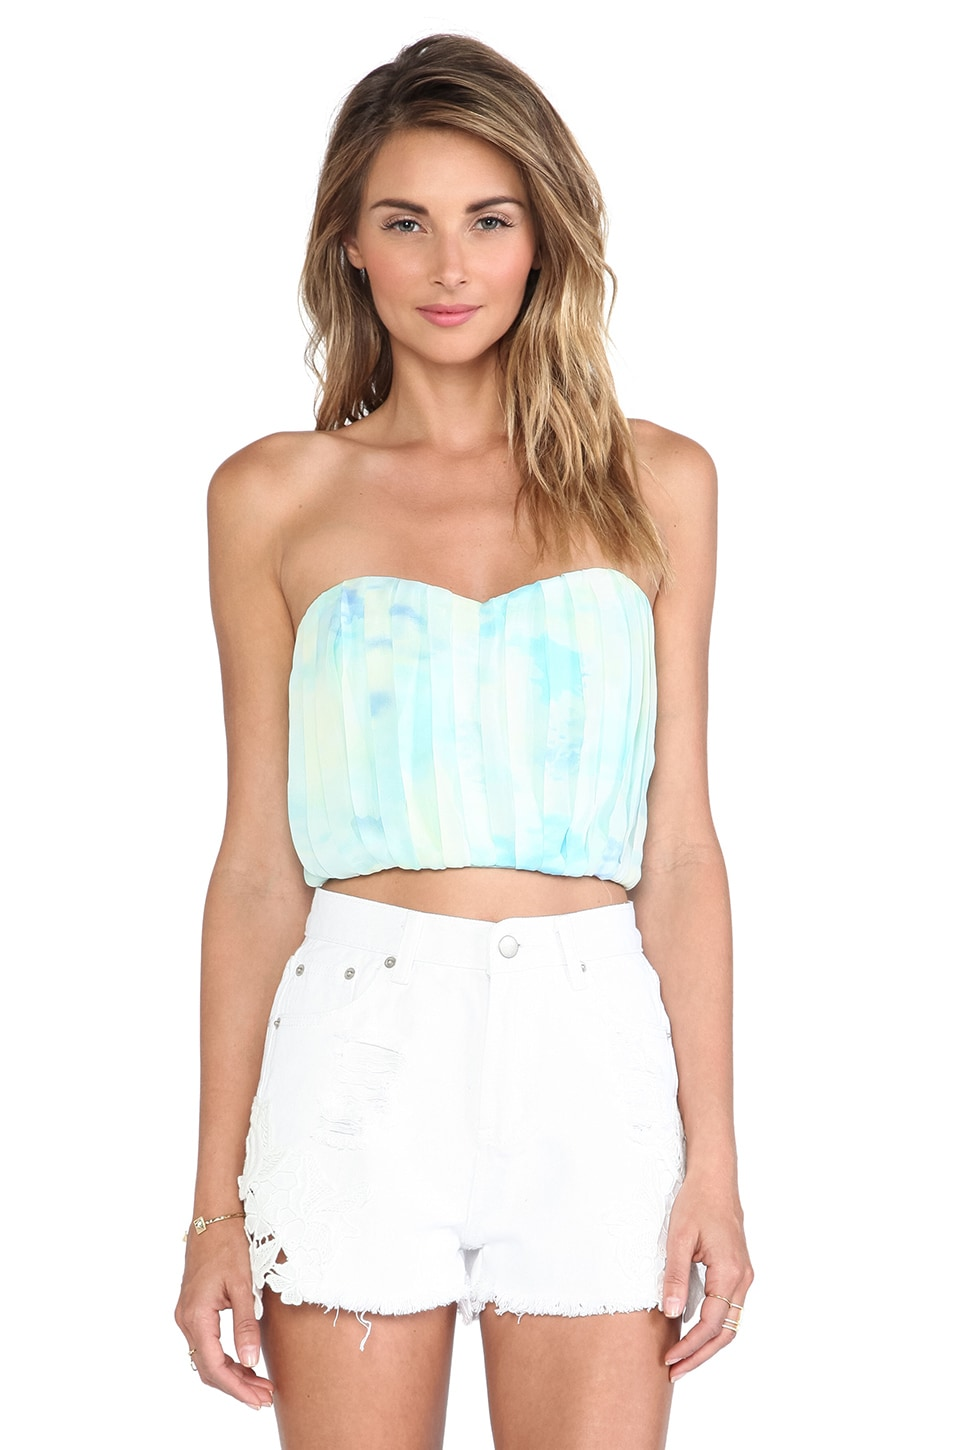 Toby Heart Ginger x Love Indie Sails Bustier in Blue